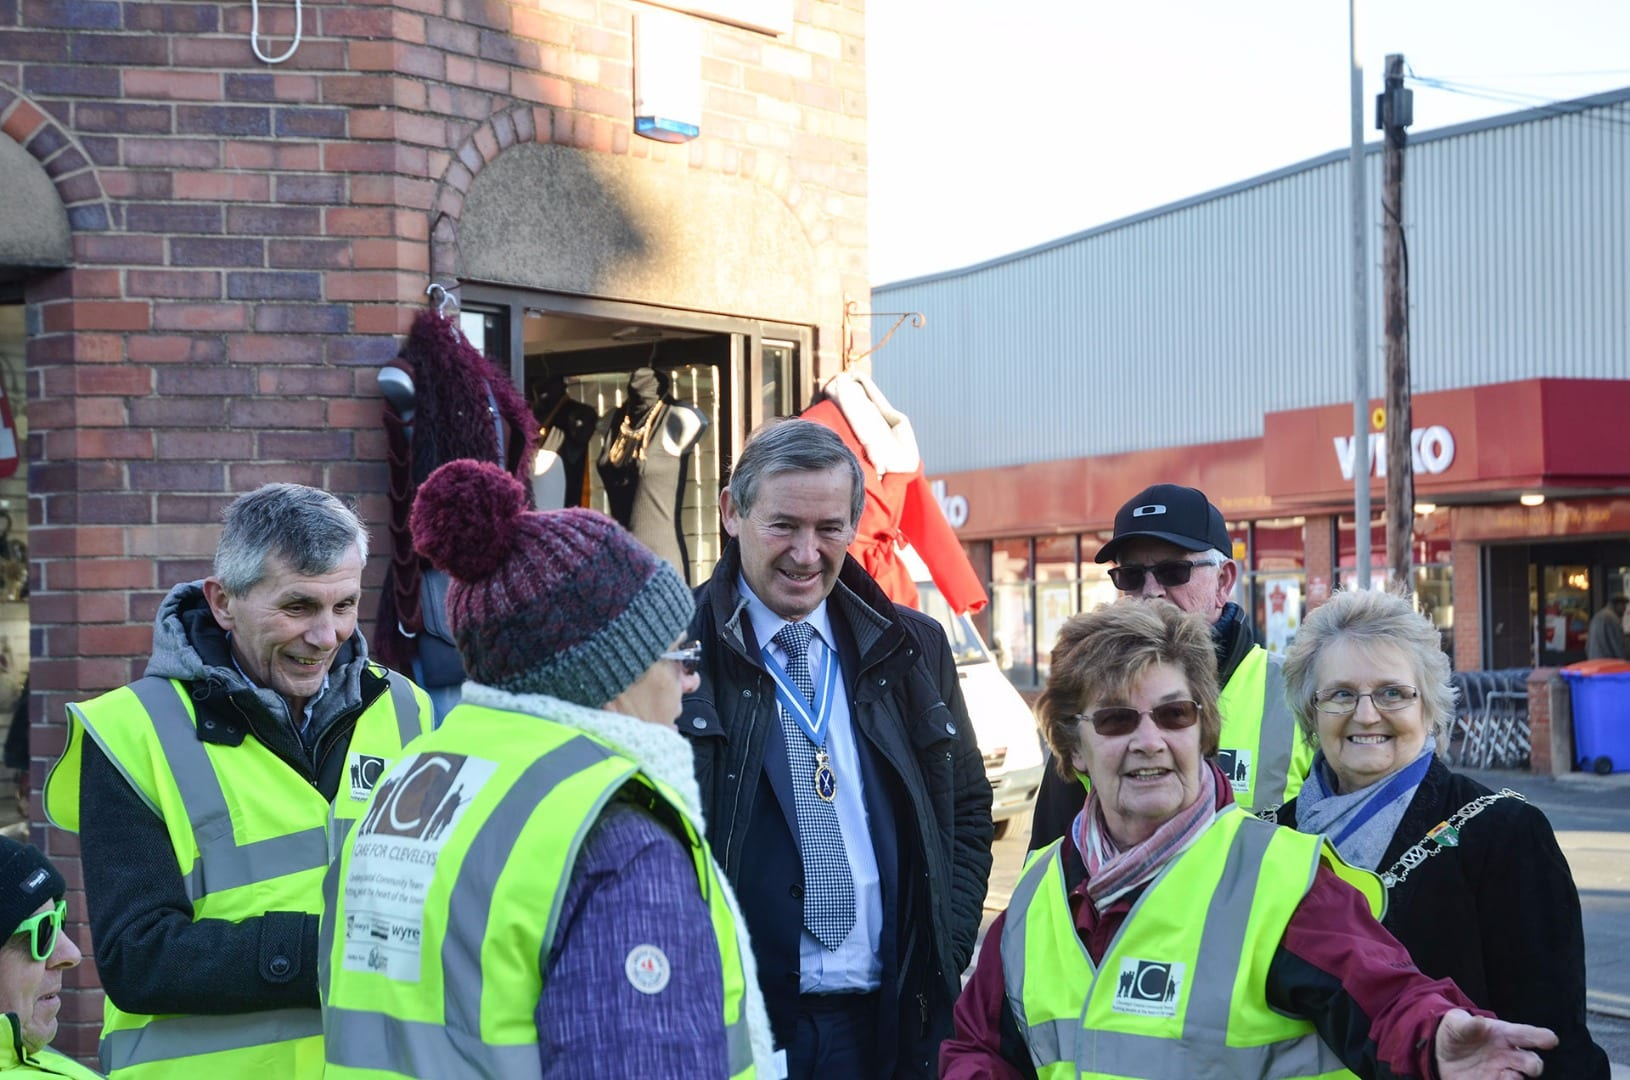 High Sherriff visits Cleveleys Coastal Community Team. Cleveleys Coastal Community Team updates